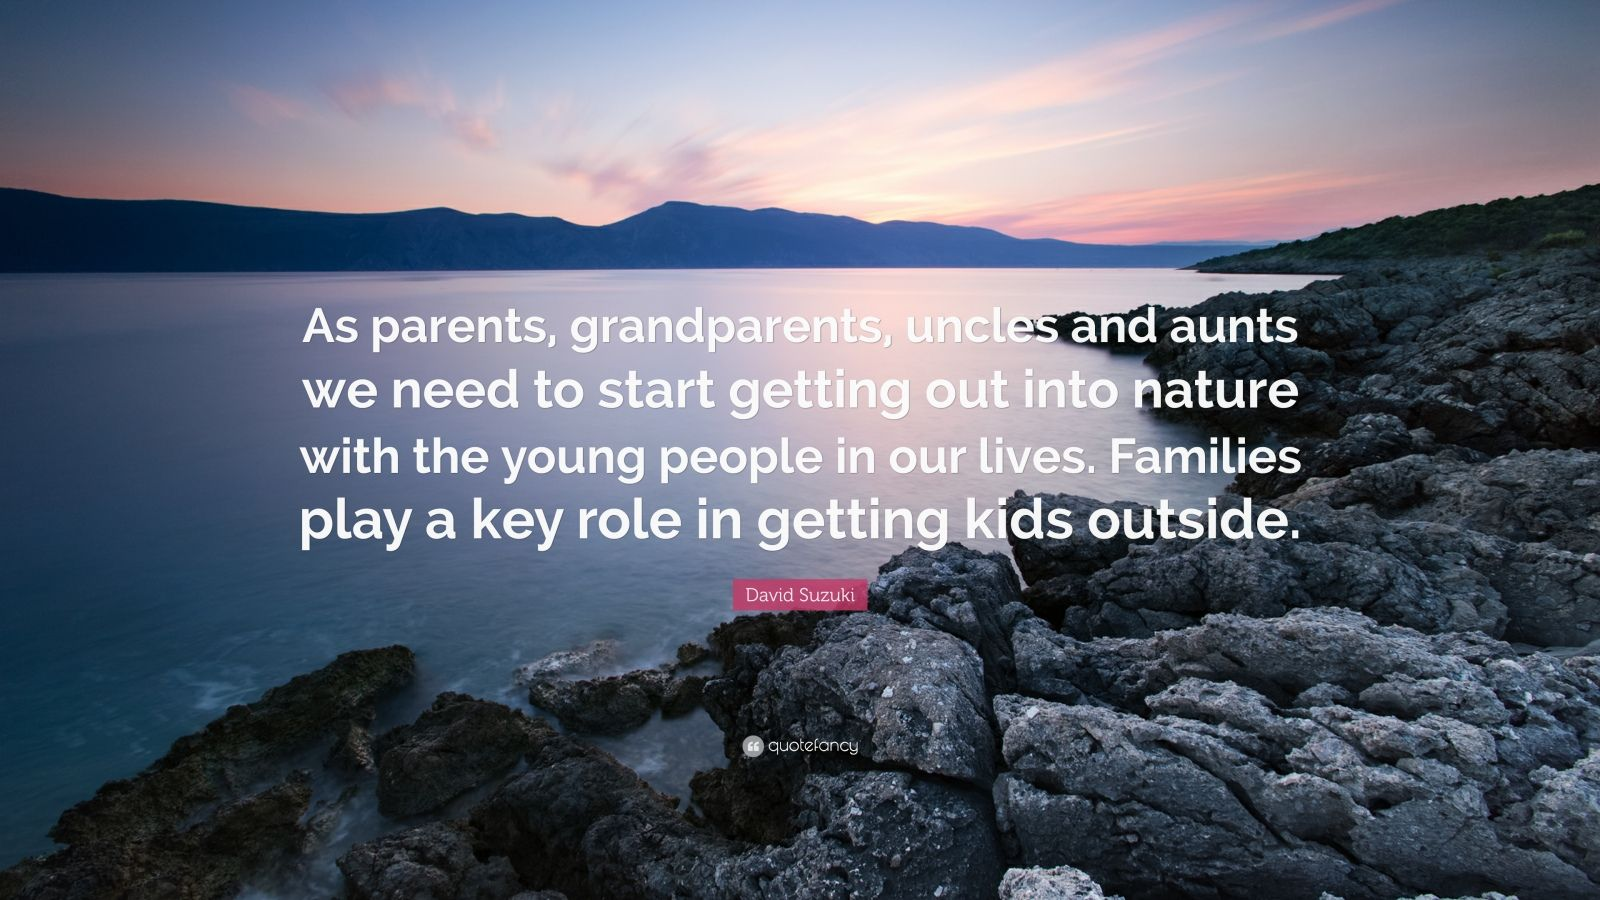 """David Suzuki Quote: """"As parents, grandparents, uncles and aunts we need to start getting out into nature with the young people in our lives. Families play a key role in getting kids outside."""""""